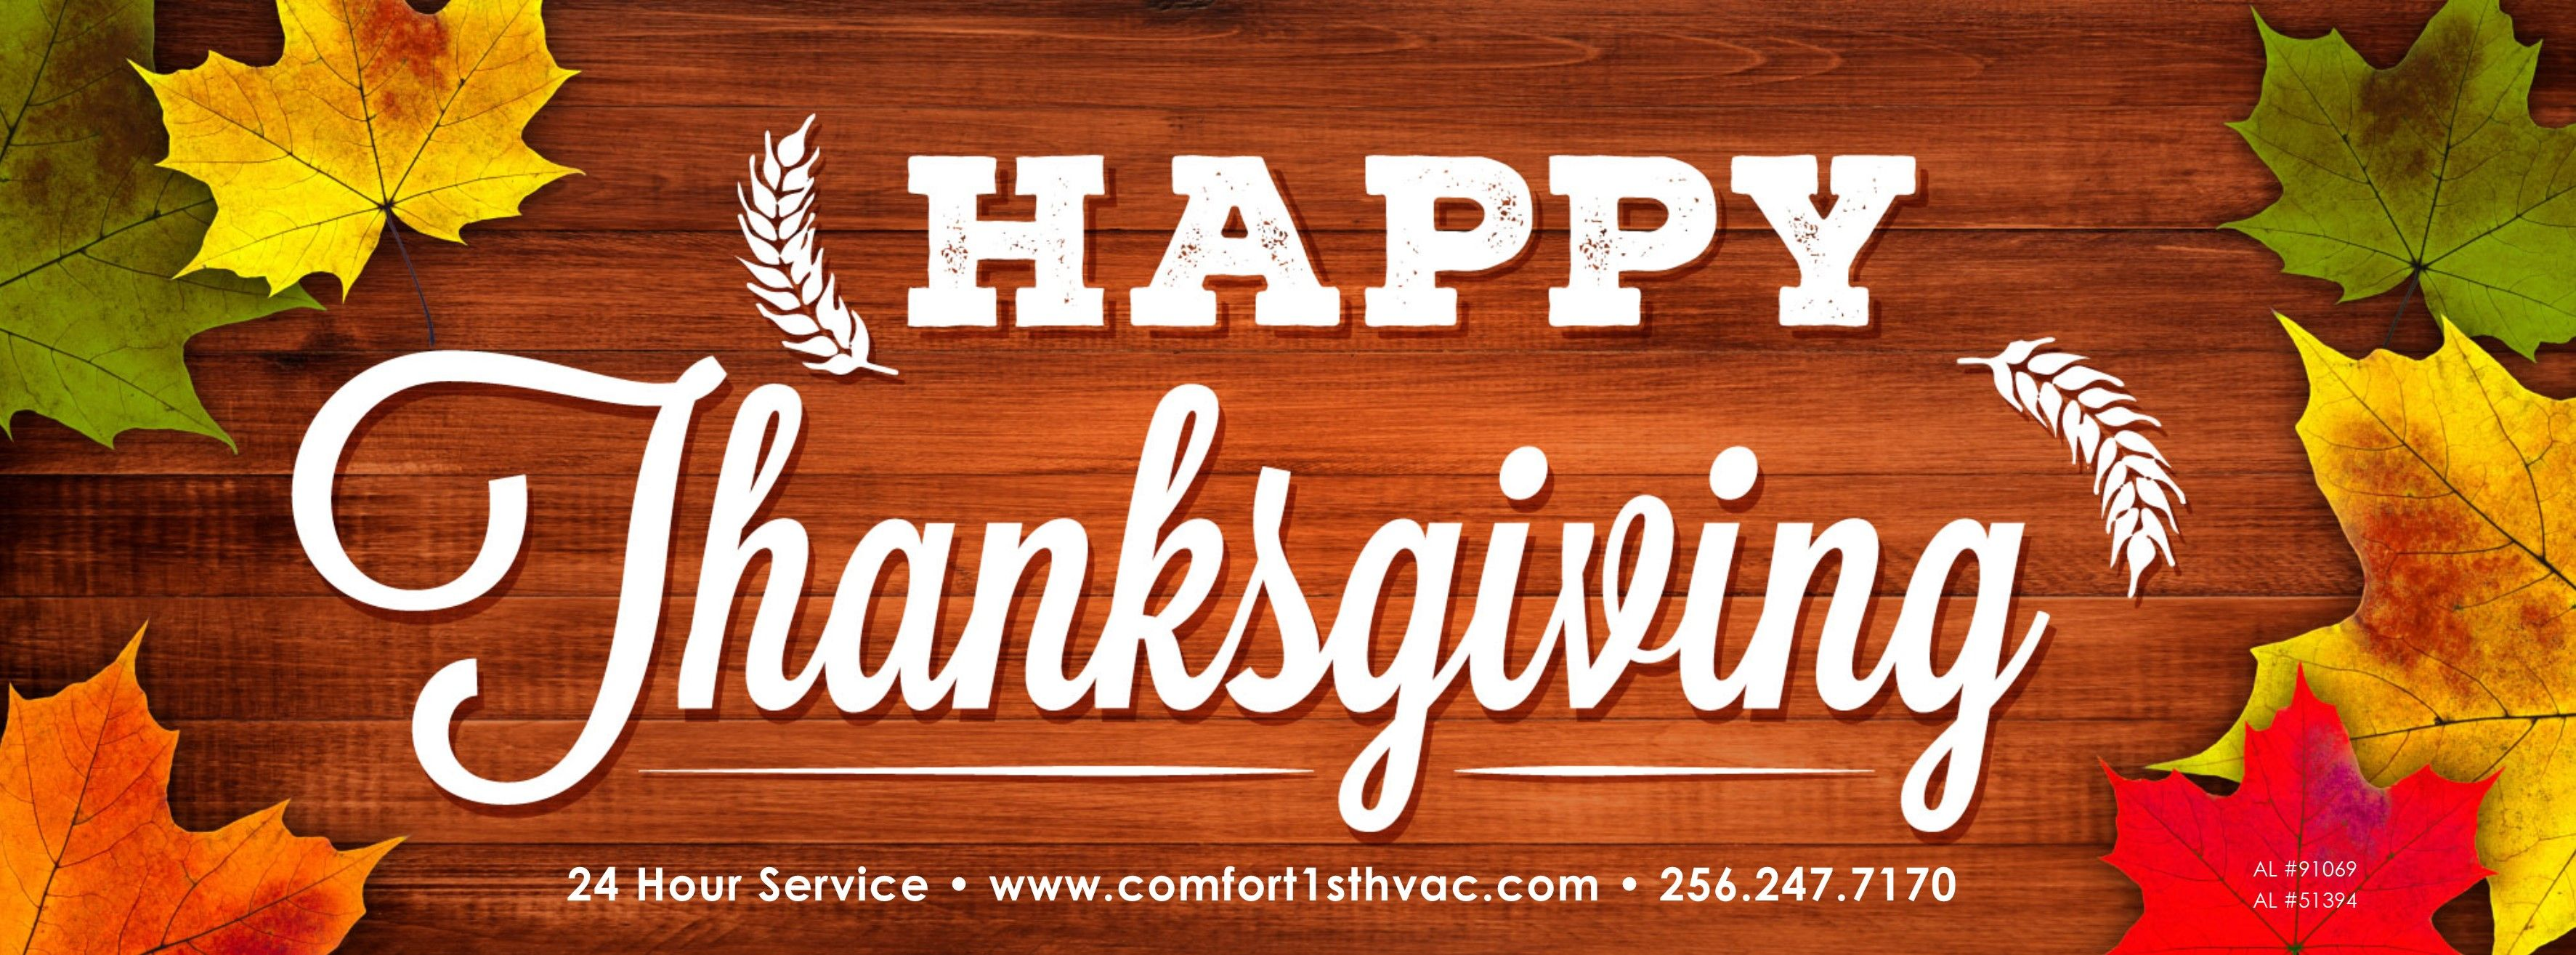 Happy Thanksgiving From Your 1 Choice Heating And Cooling Company